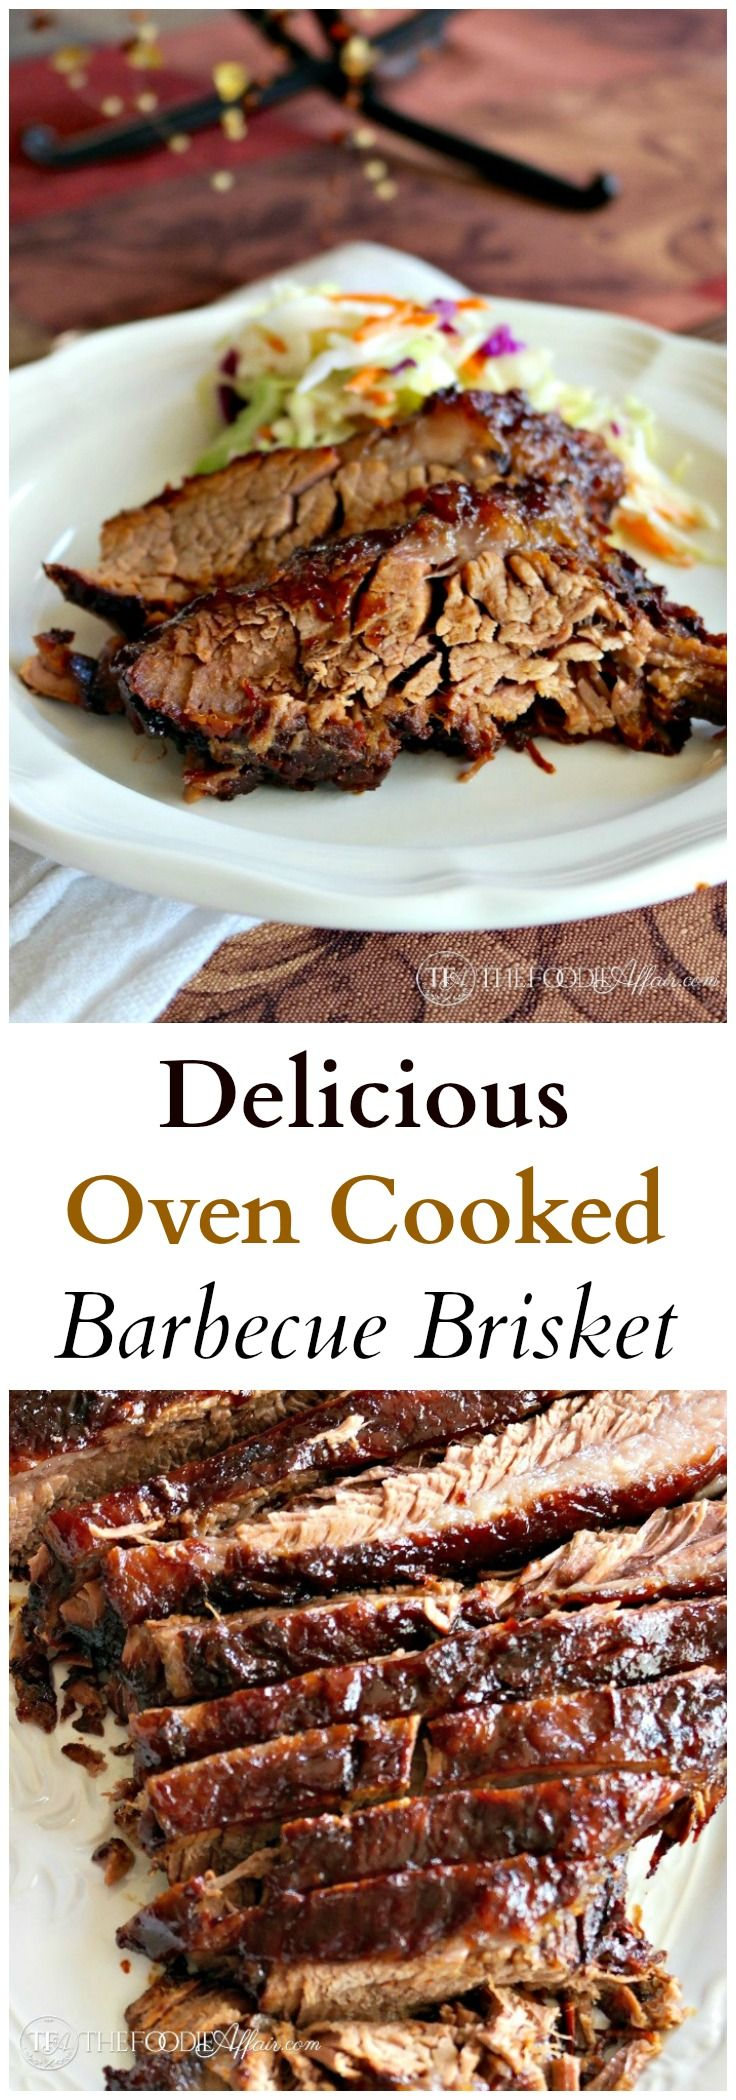 Delicious Oven Cooked Barbecue Brisket marinated overnight in liquid smoke and then slow cooked to perfection - The Foodie Affair